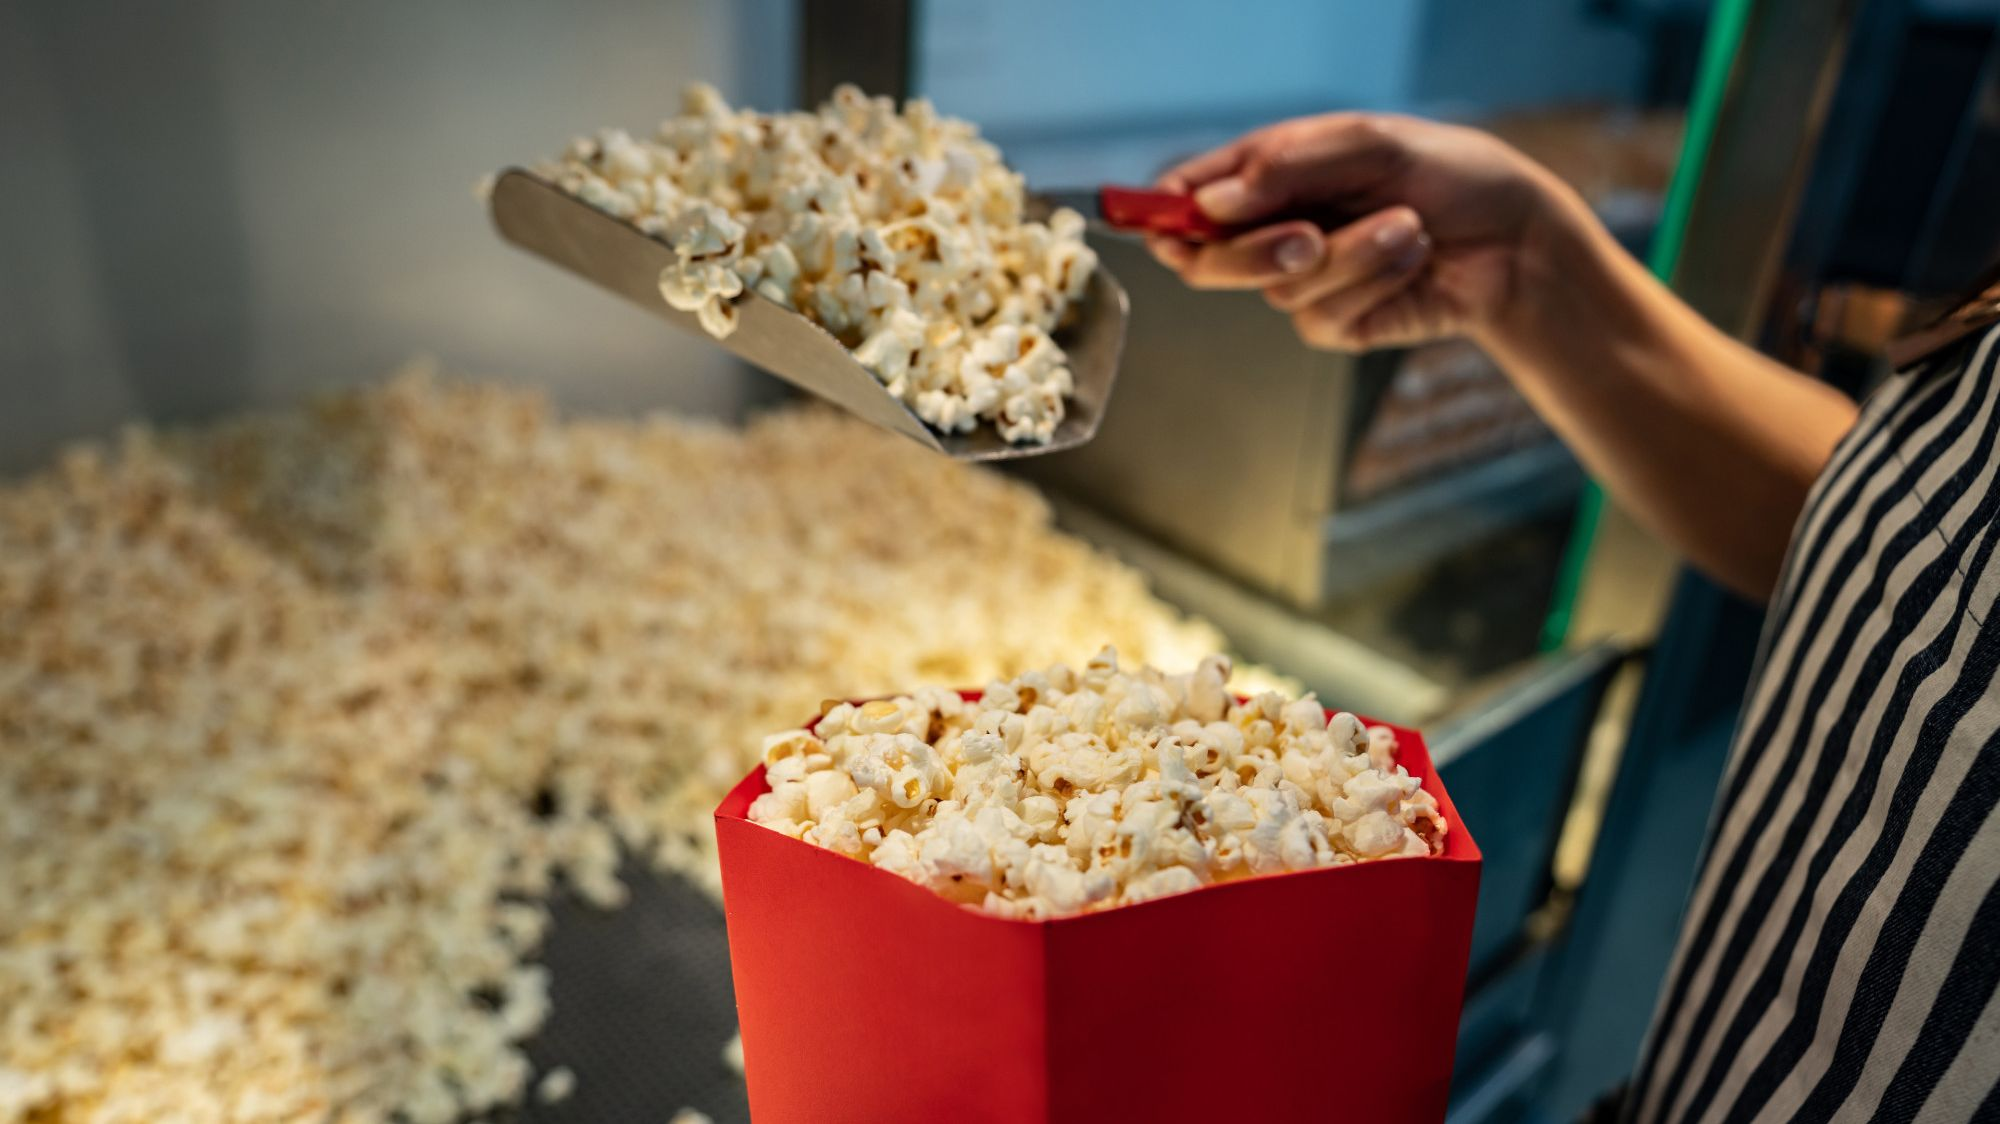 Let's All Go to the Lobby: 8 Facts About Movie Theater Snacks